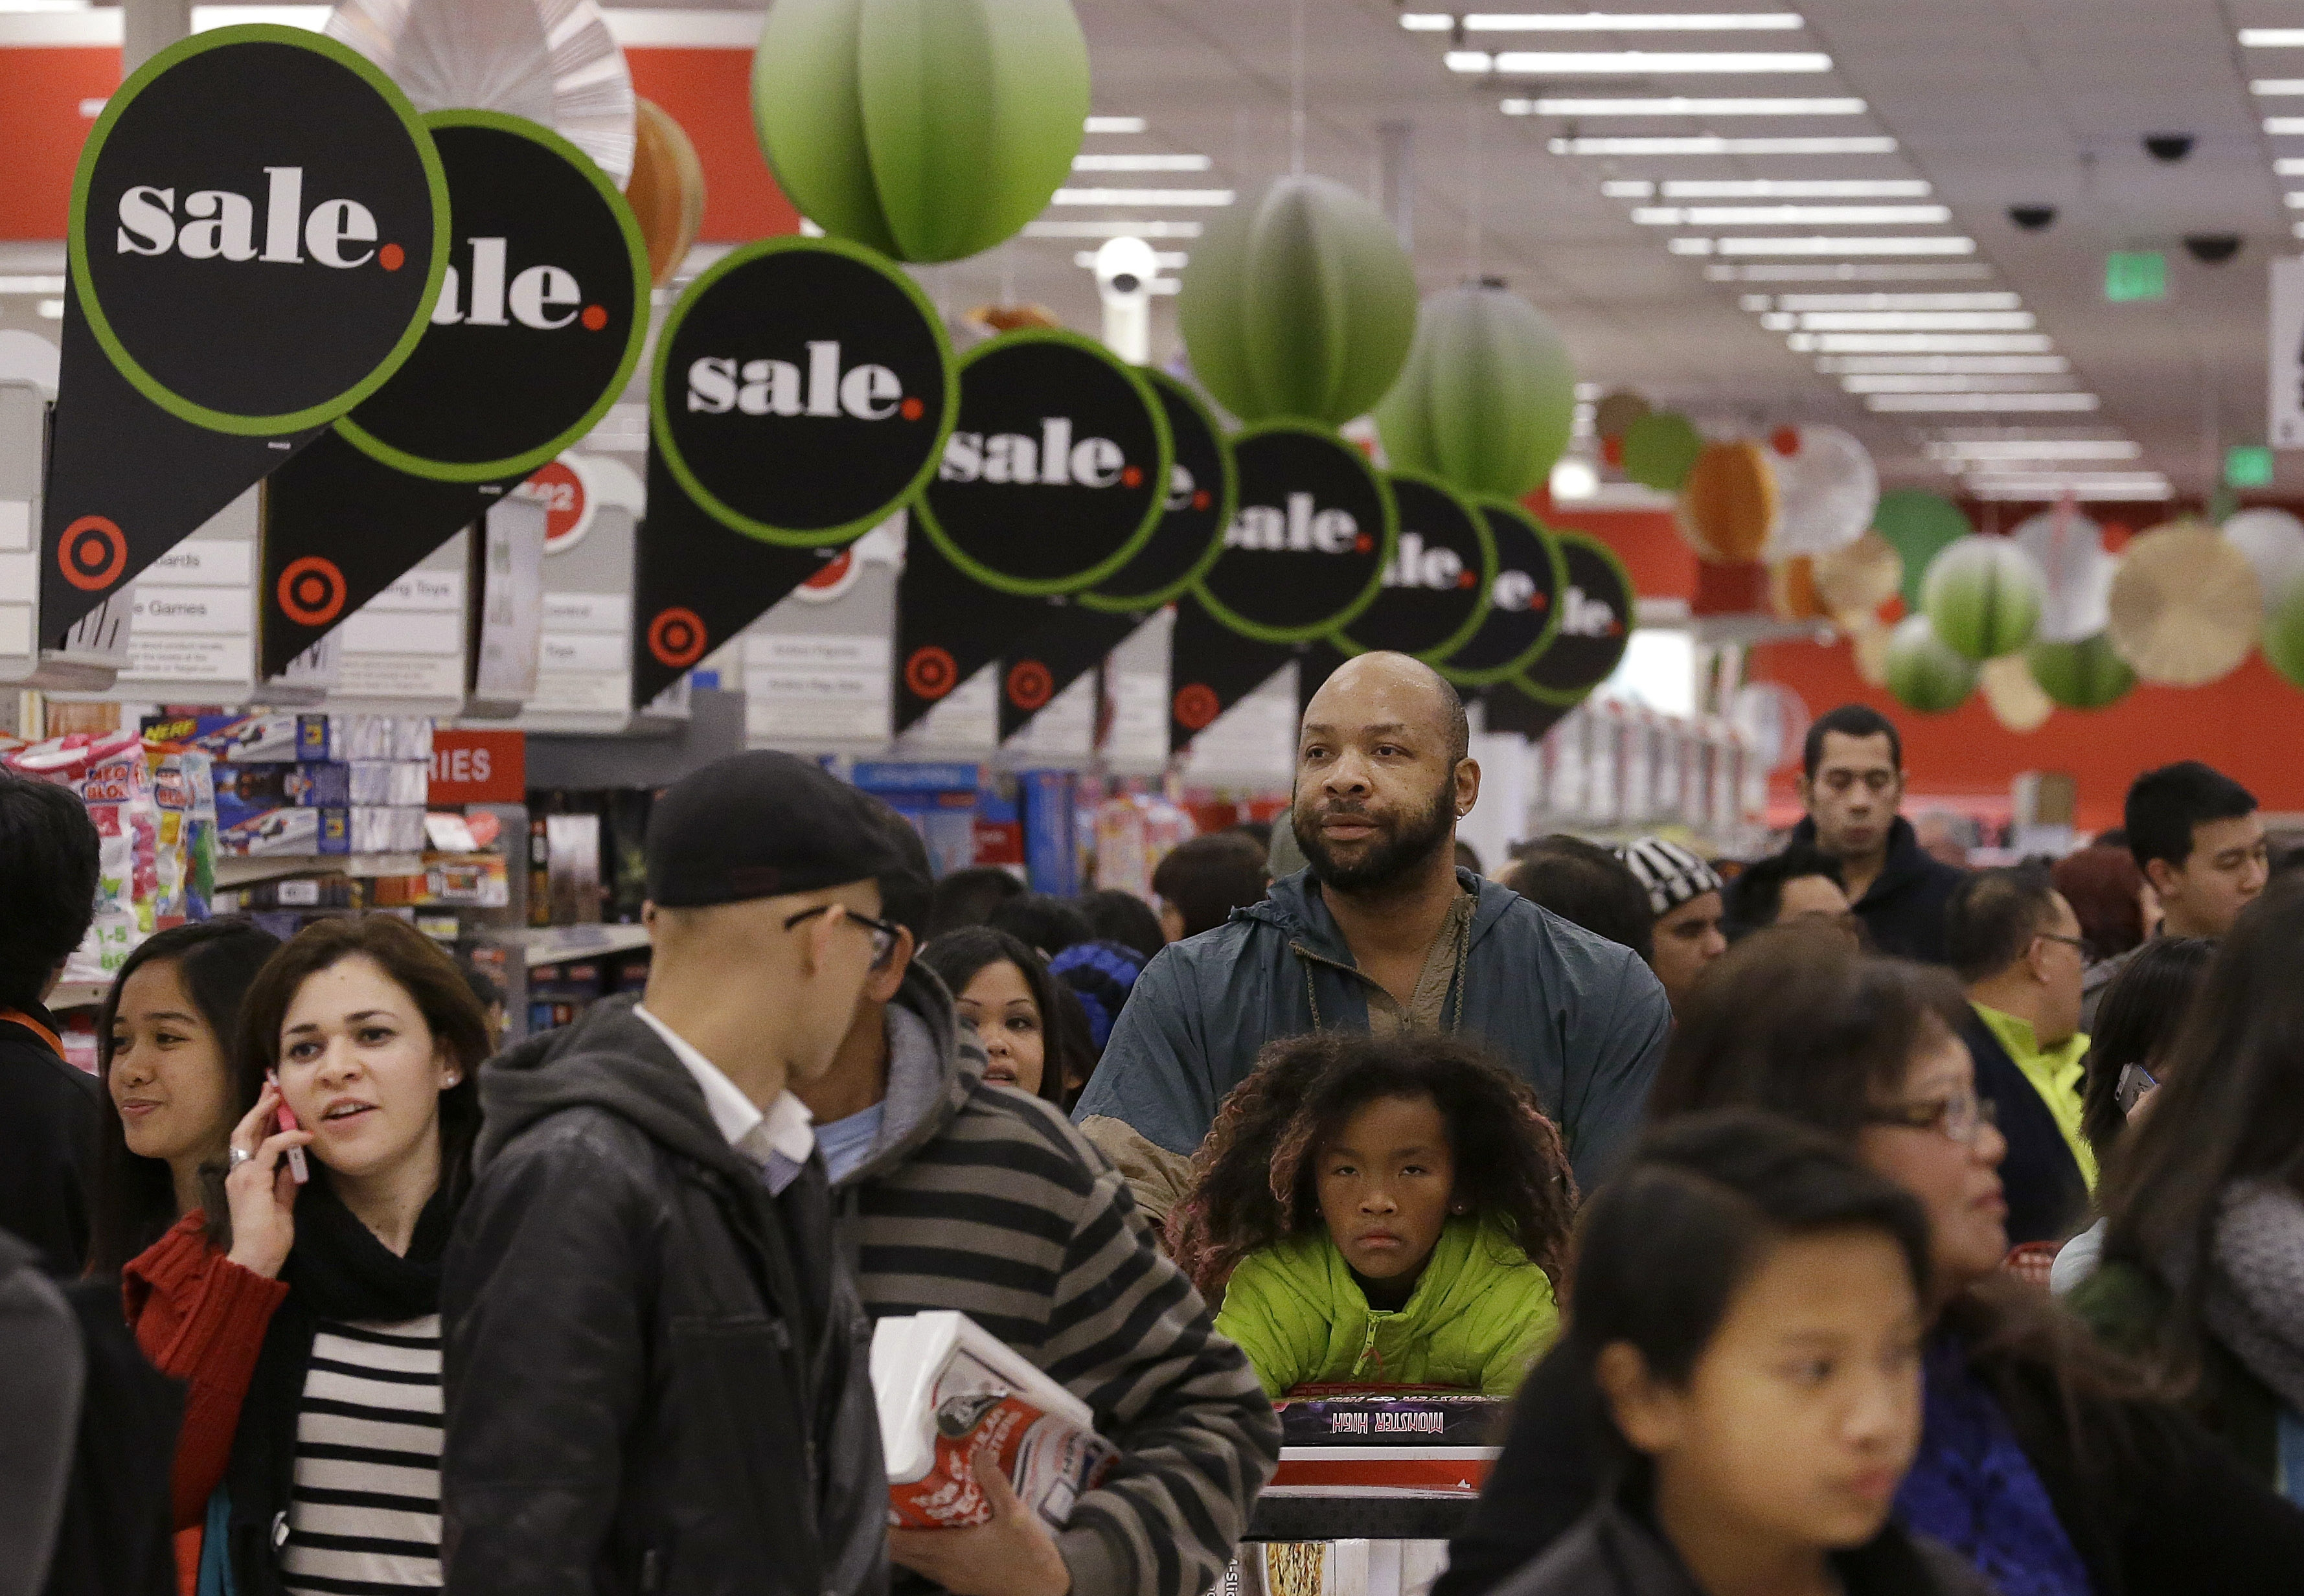 Though more people came out to shop Thanksgiving weekend this year, they spent less money than they did in 2012.